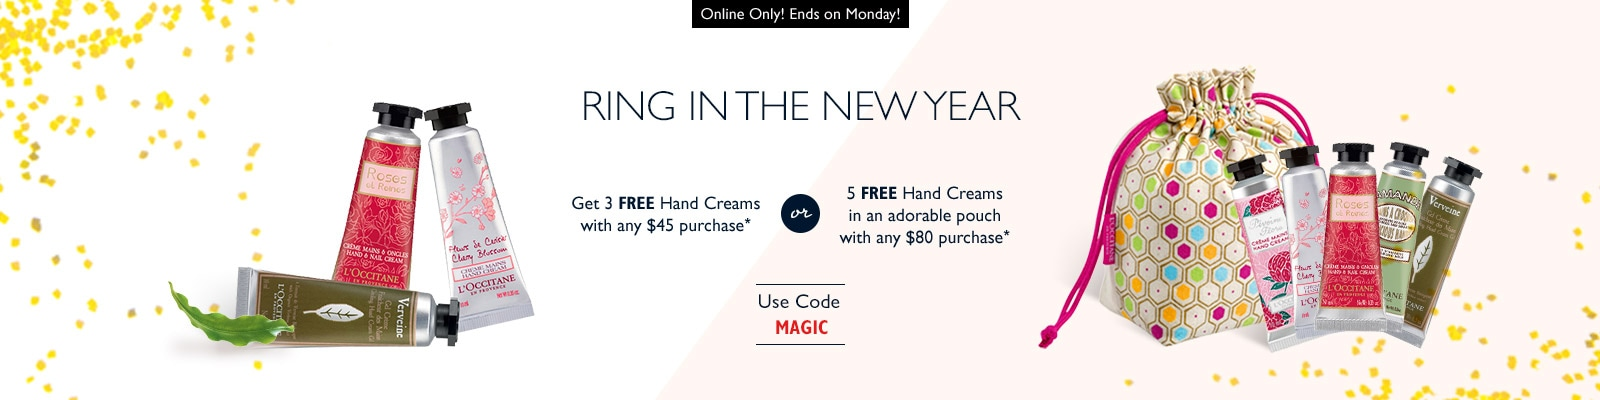 Receive a free 6-piece bonus gift with your $80 L'Occitane purchase